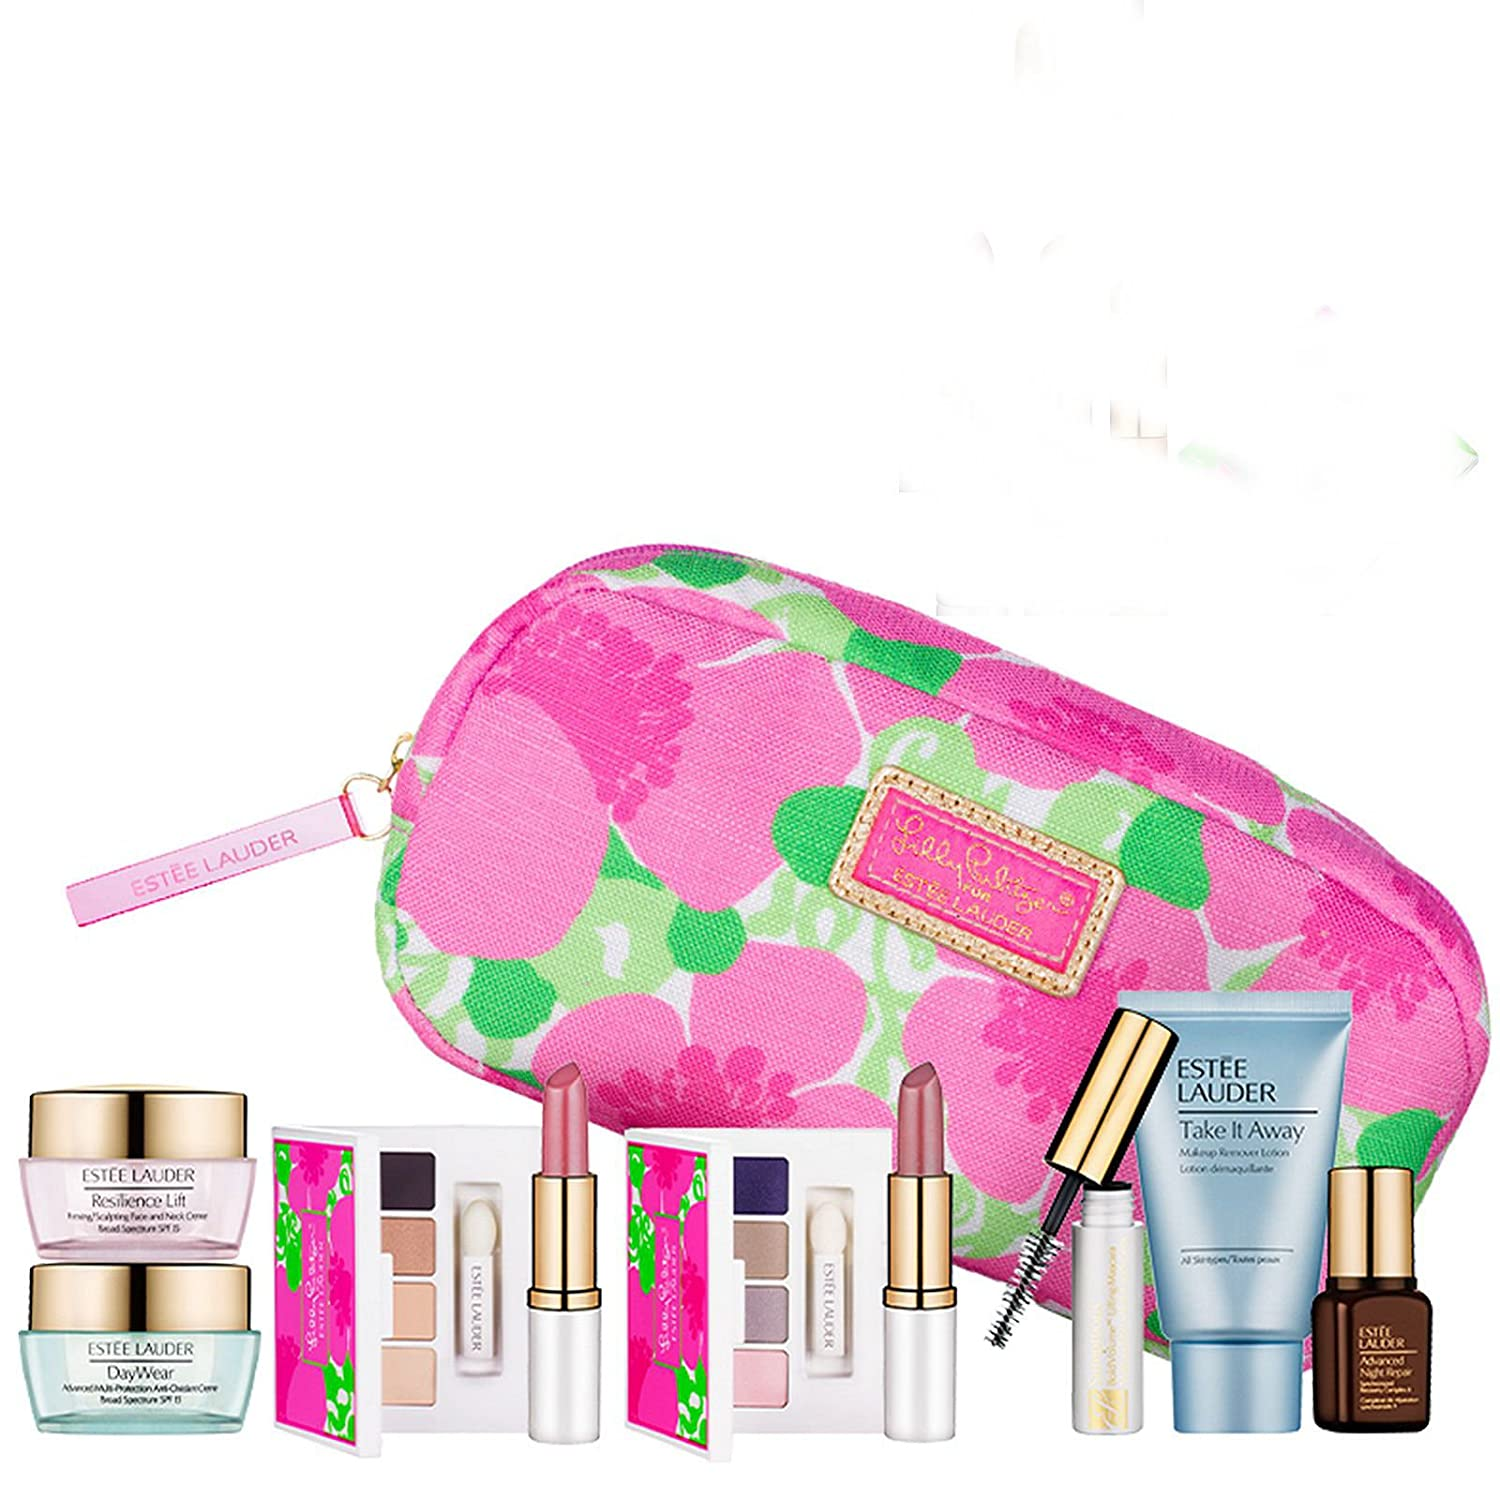 Amazon.com : New Estee Lauder Spring 7pc Skincare Makeup Gift Set ...